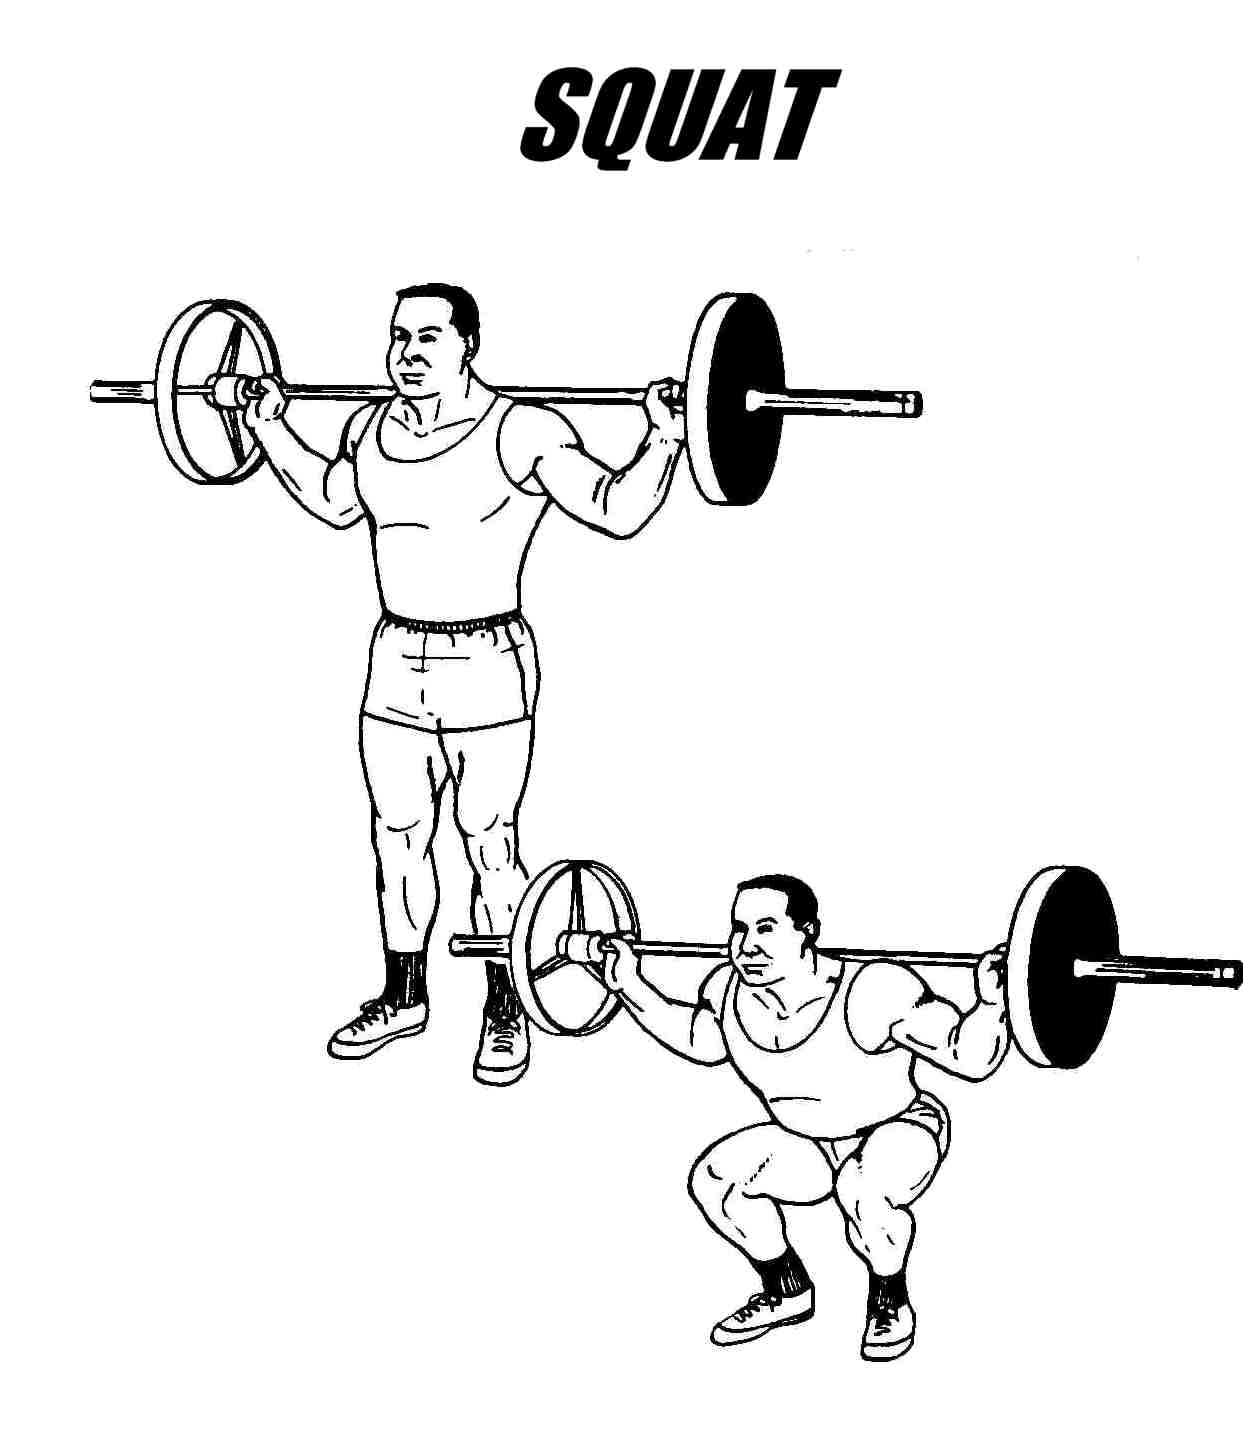 Squatter On Squats And Squatting